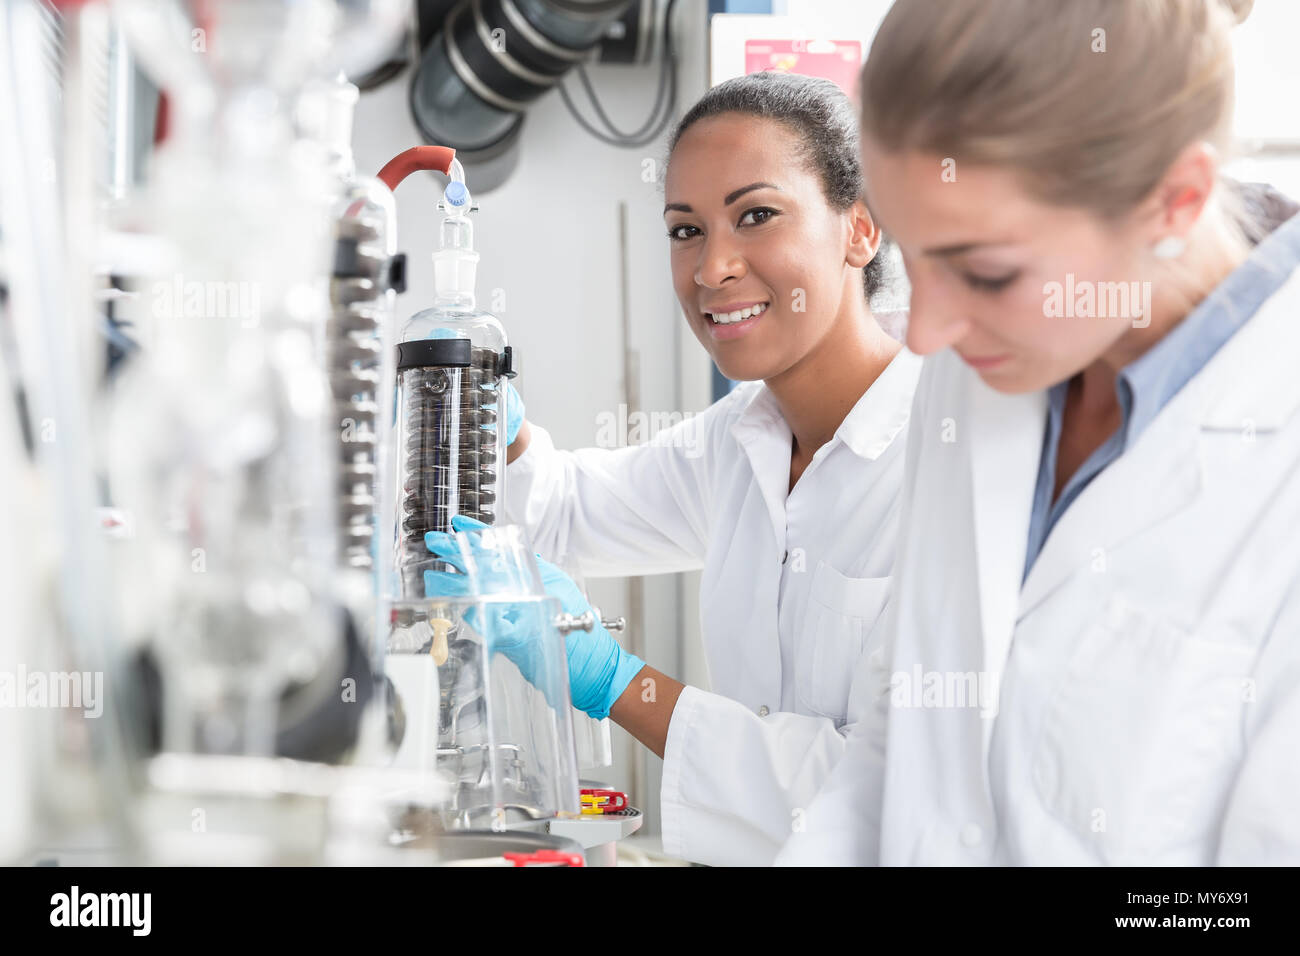 Group of scientists with gloves and gowns in laboratory - Stock Image